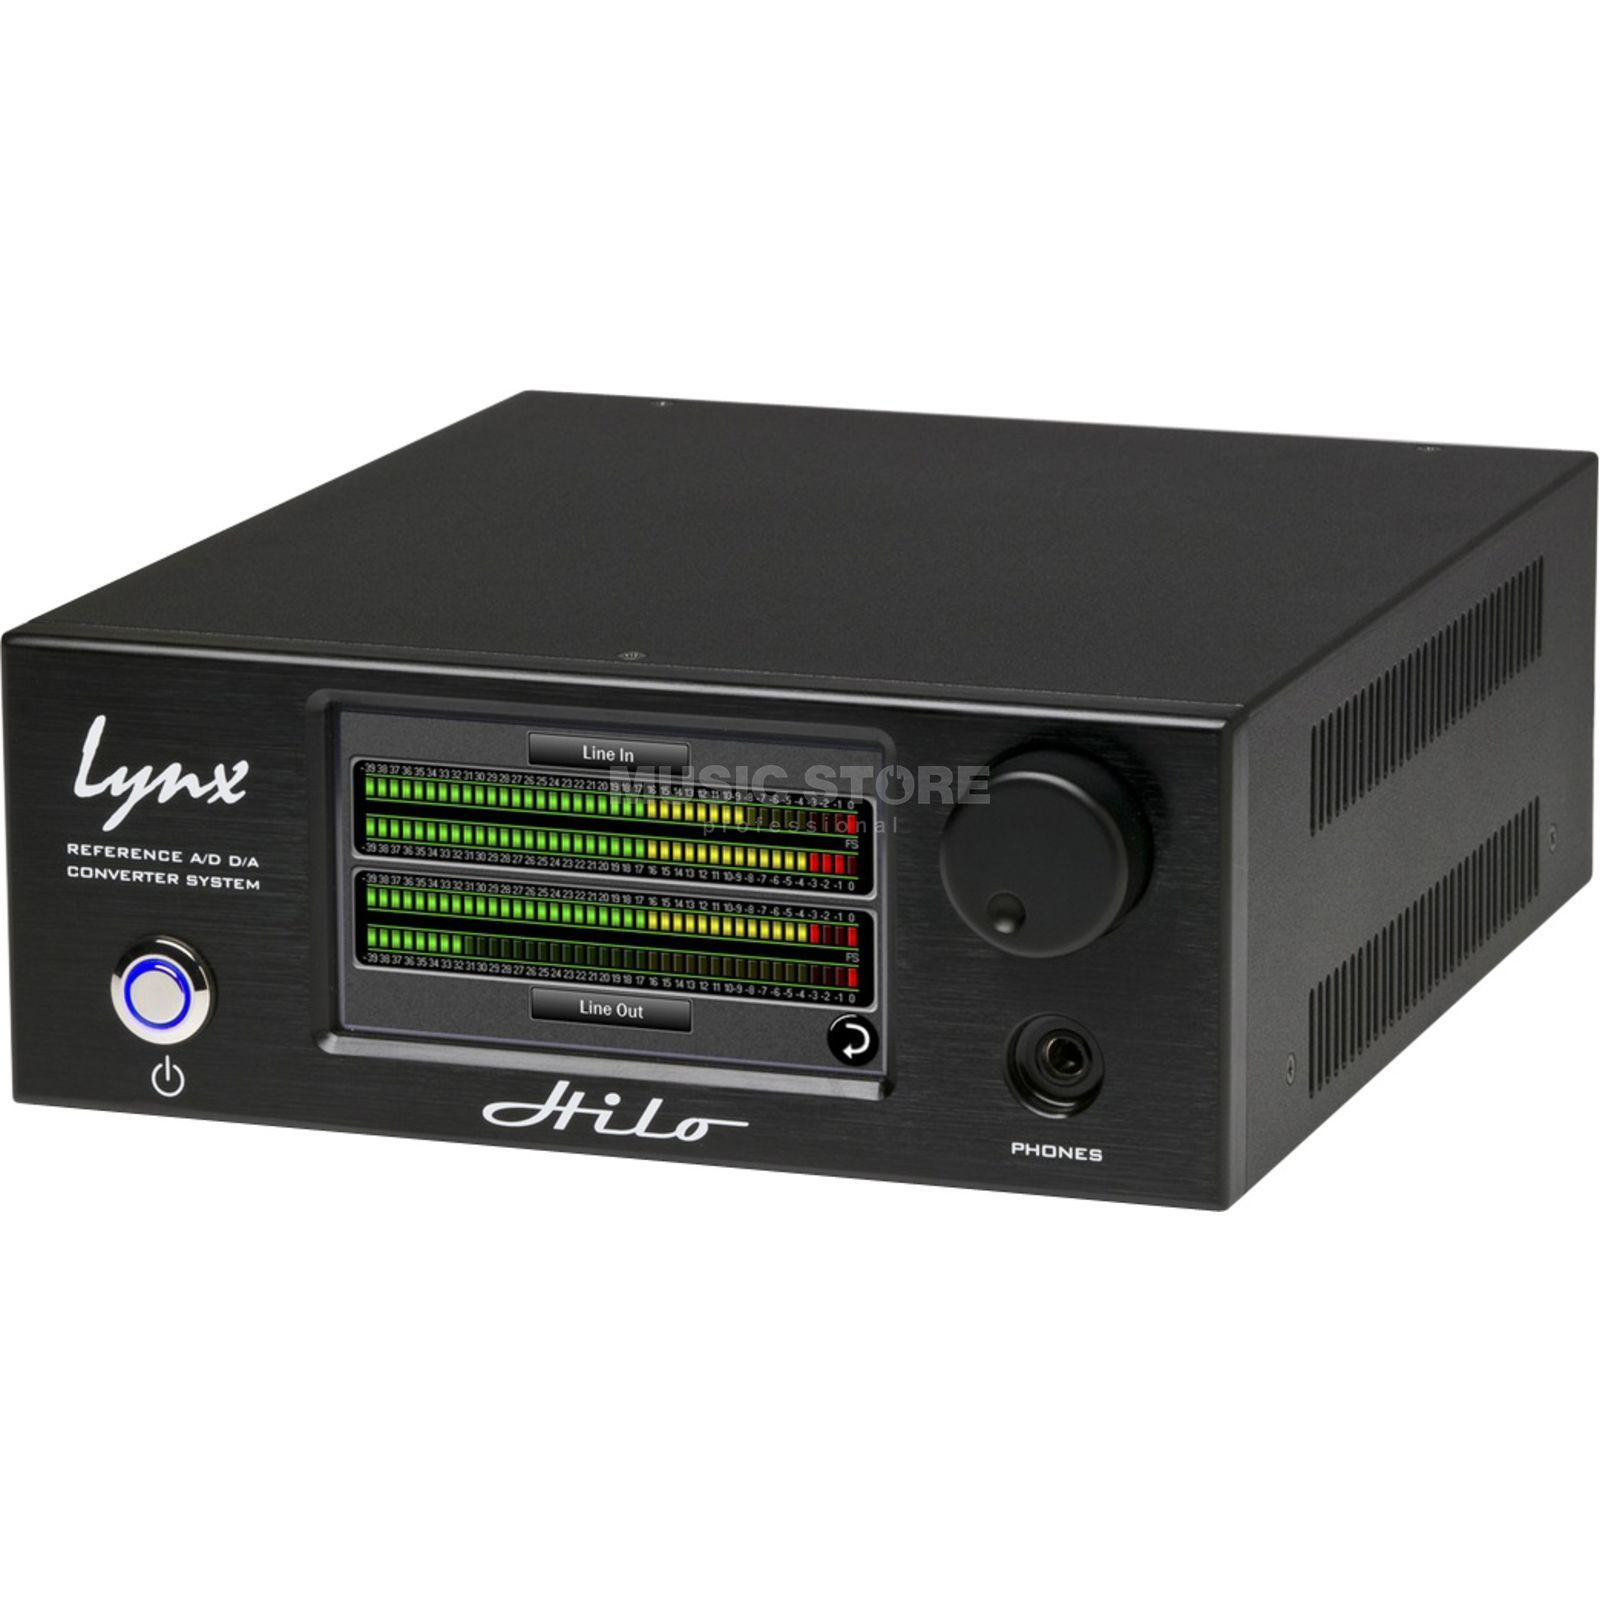 Lynx Studio Technology Hilo USB black  Product Image